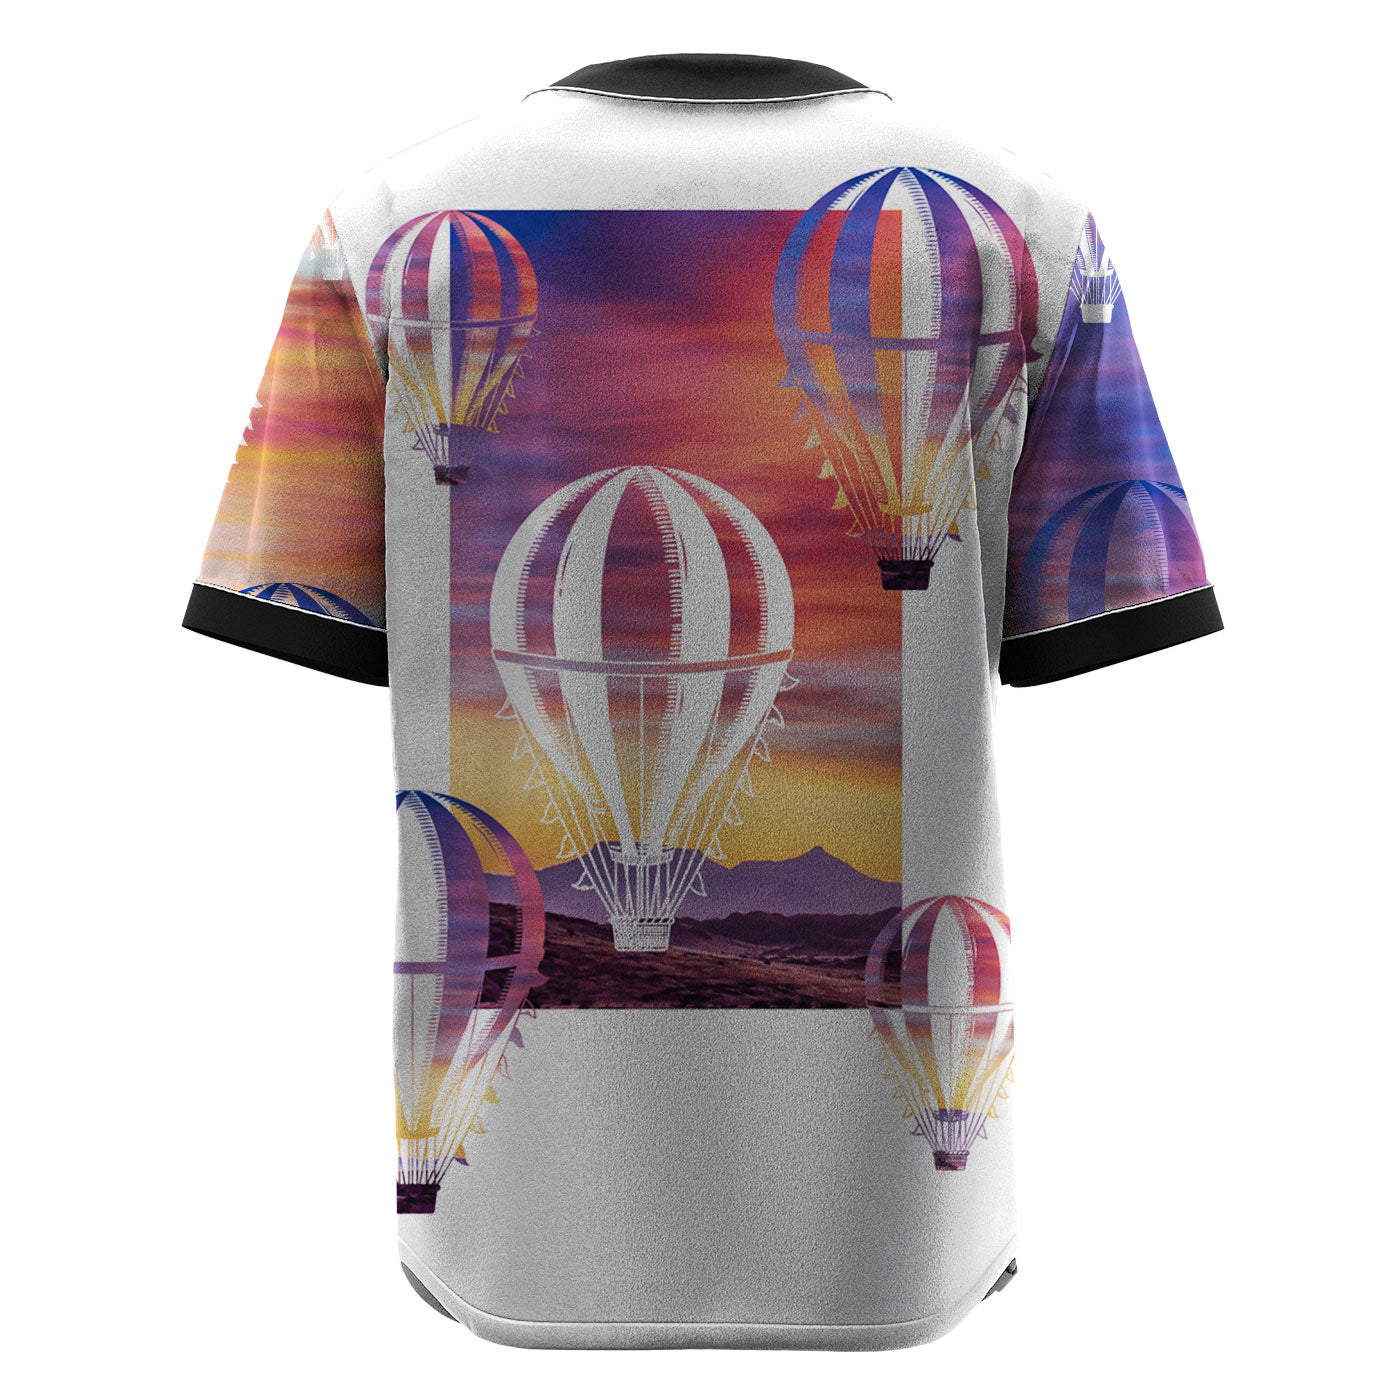 Balloon Wonderland Jersey